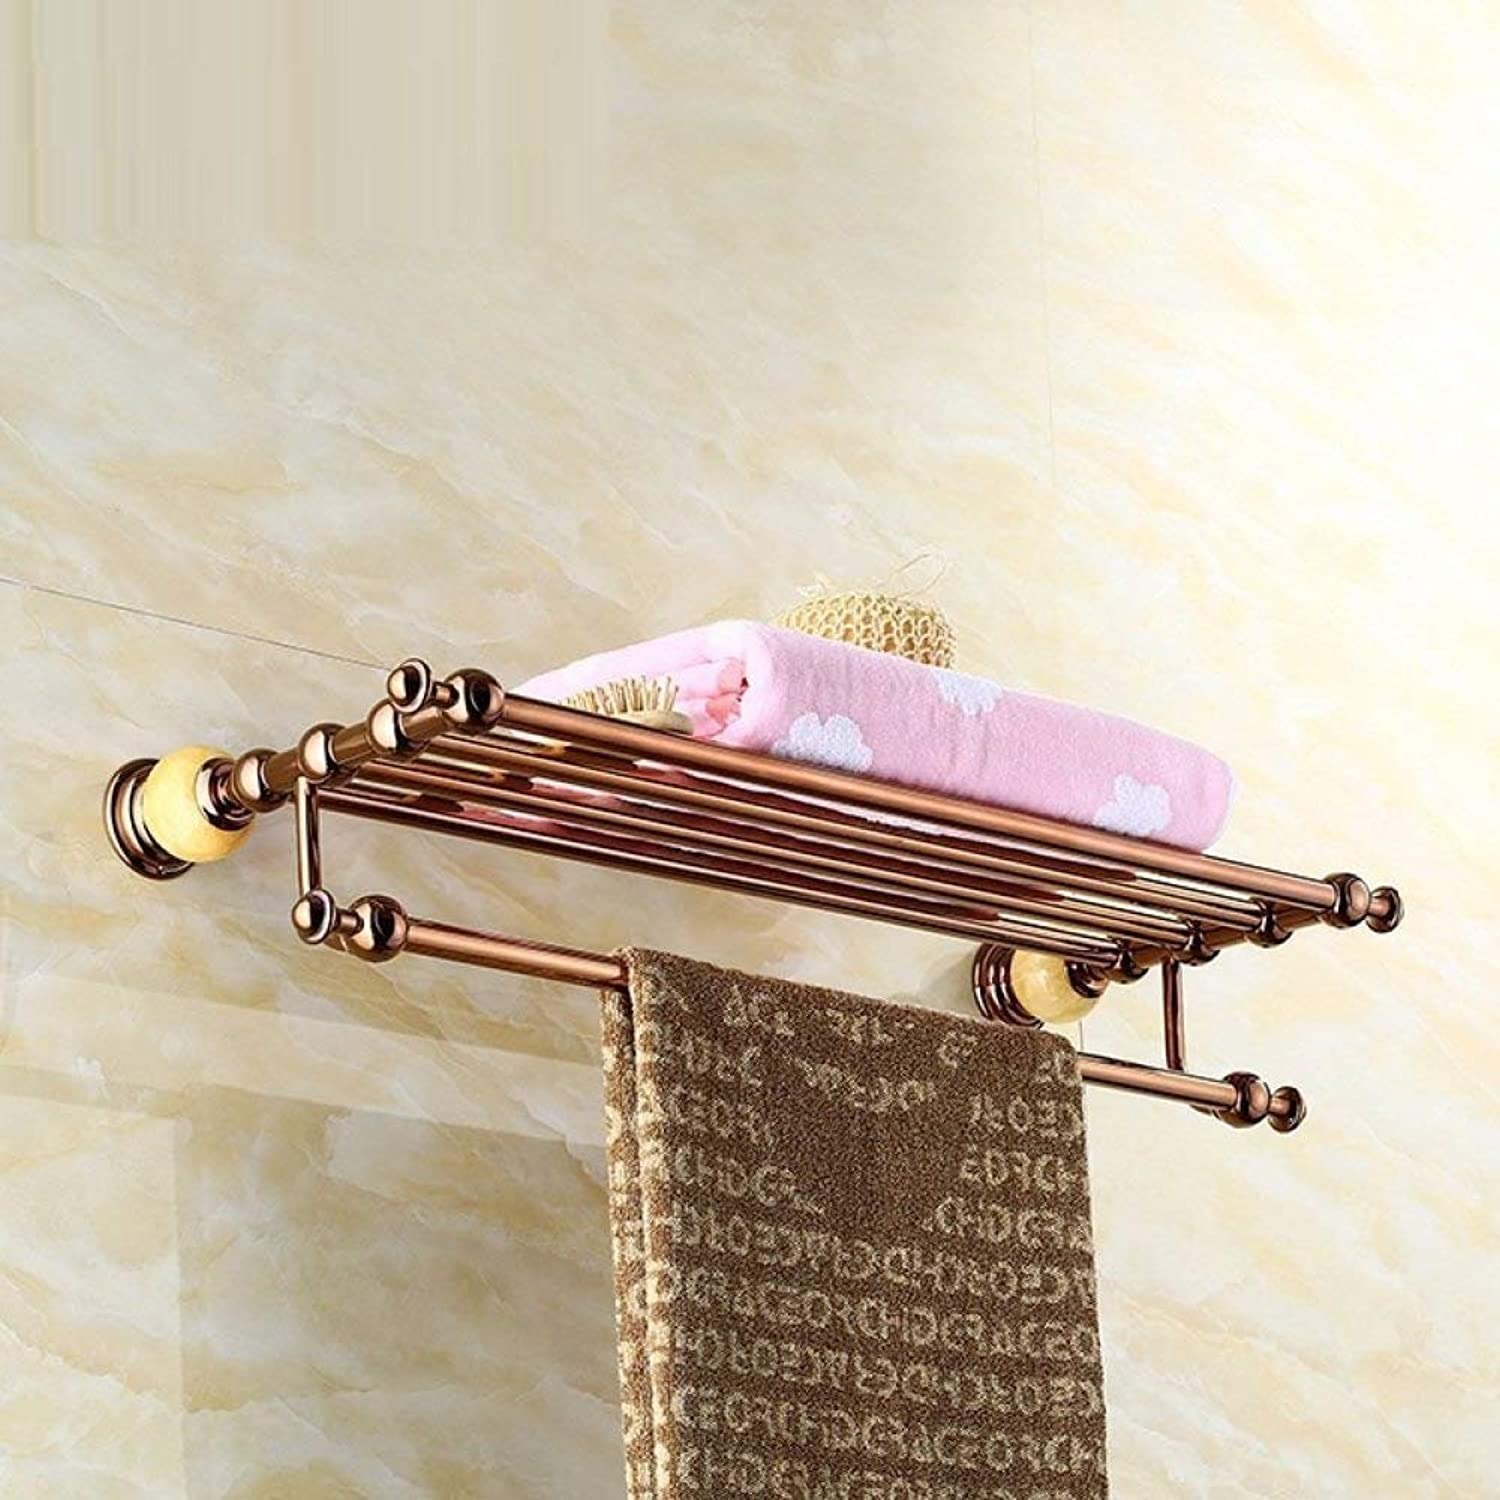 Retro Style Door European-Heated Towels, of a Copper Alloy of The Drilling Platform, Home and Bathroom, Corrosion of The Luxury Hotel Top of Range Decorative Accessories,B,Length 60cm